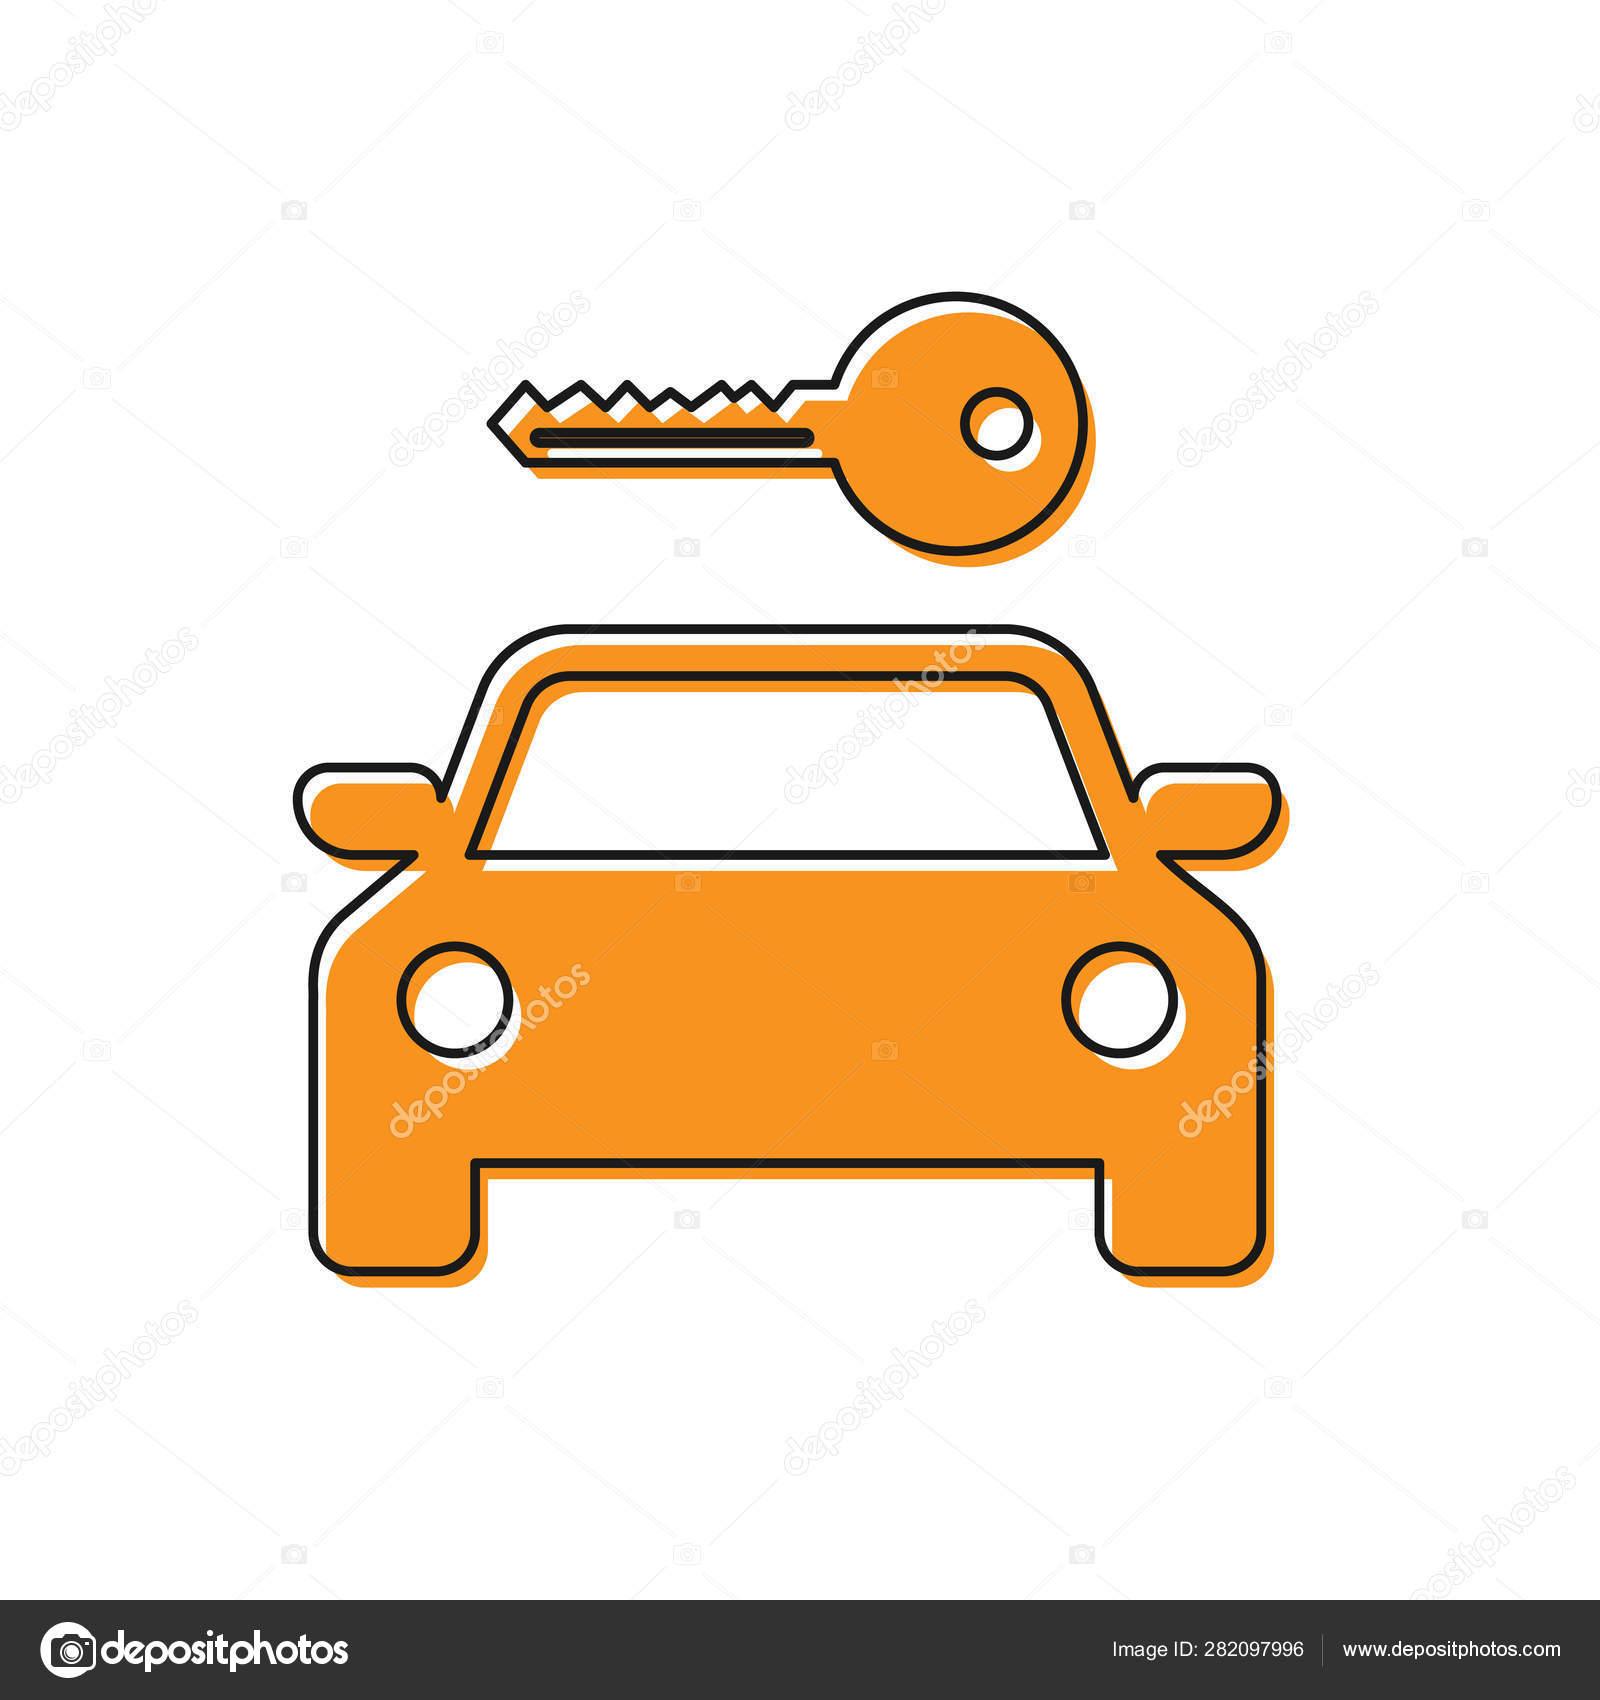 Orange Car Rental Icon Isolated On White Background Rent A Car Sign Key With Car Concept For Automobile Repair Service Spare Parts Store Vector Illustration Stock Vector C Vectorvalera Gmail Com 282097996